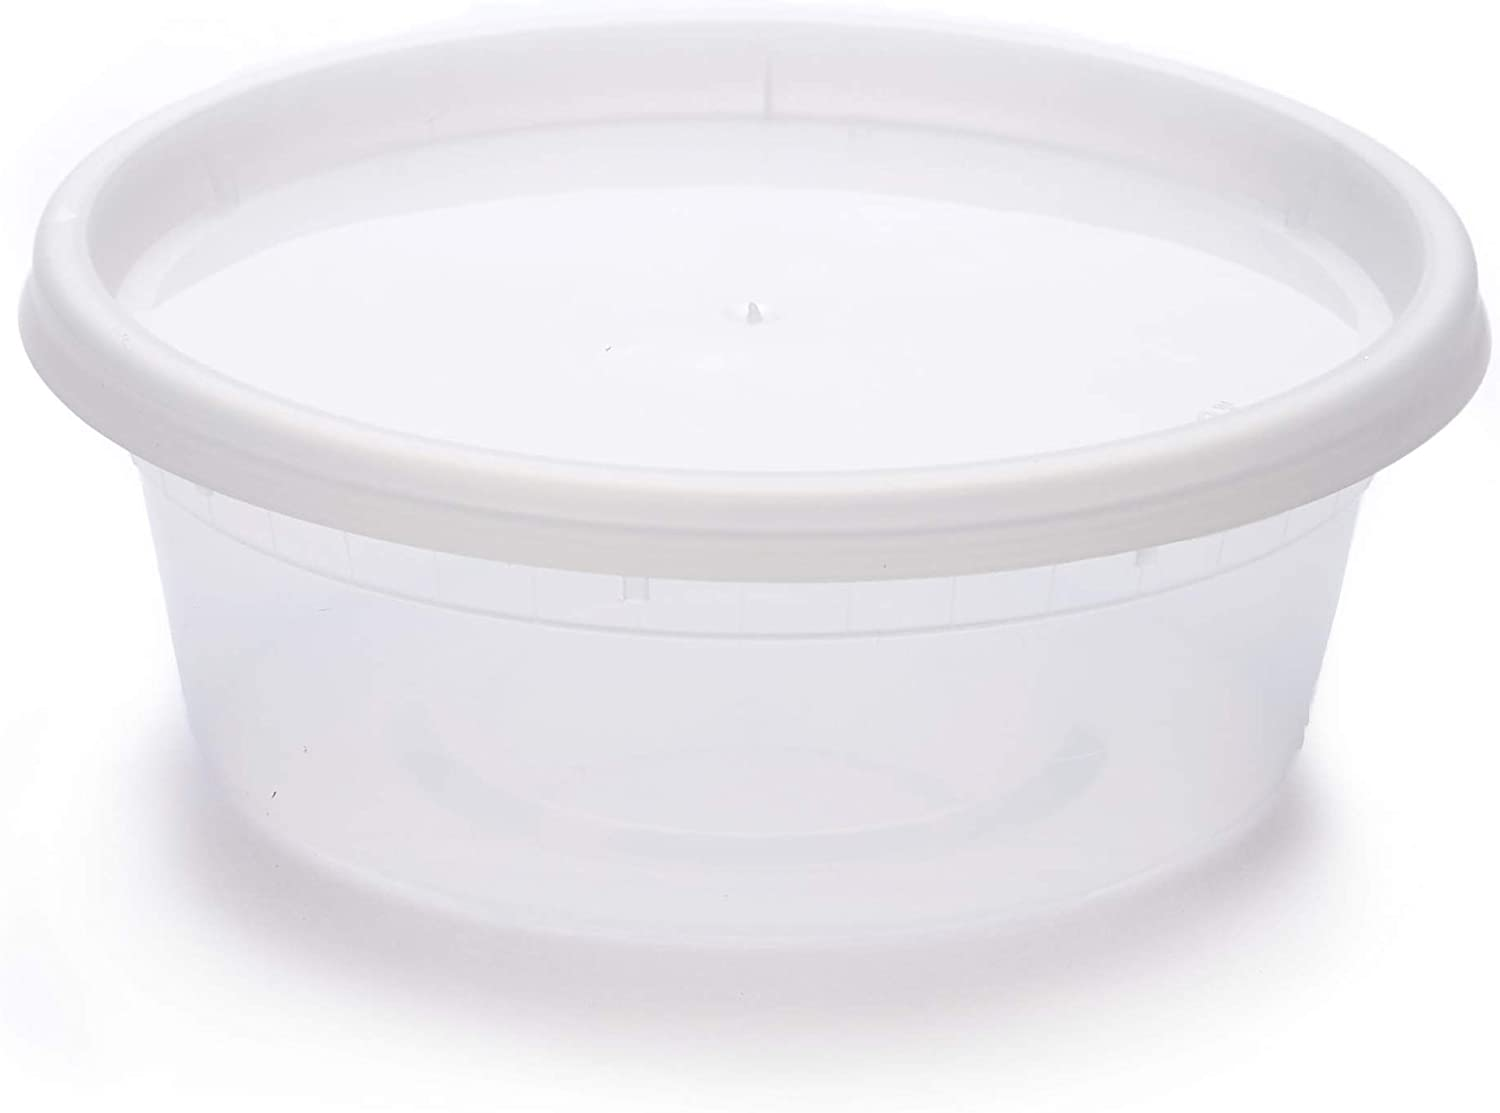 Scotty's 48 Pack of 8 oz Deli Plastic Food Storage Containers with Lids - 48 containers and 48 lids - Microwaveable - Restaurant Quality